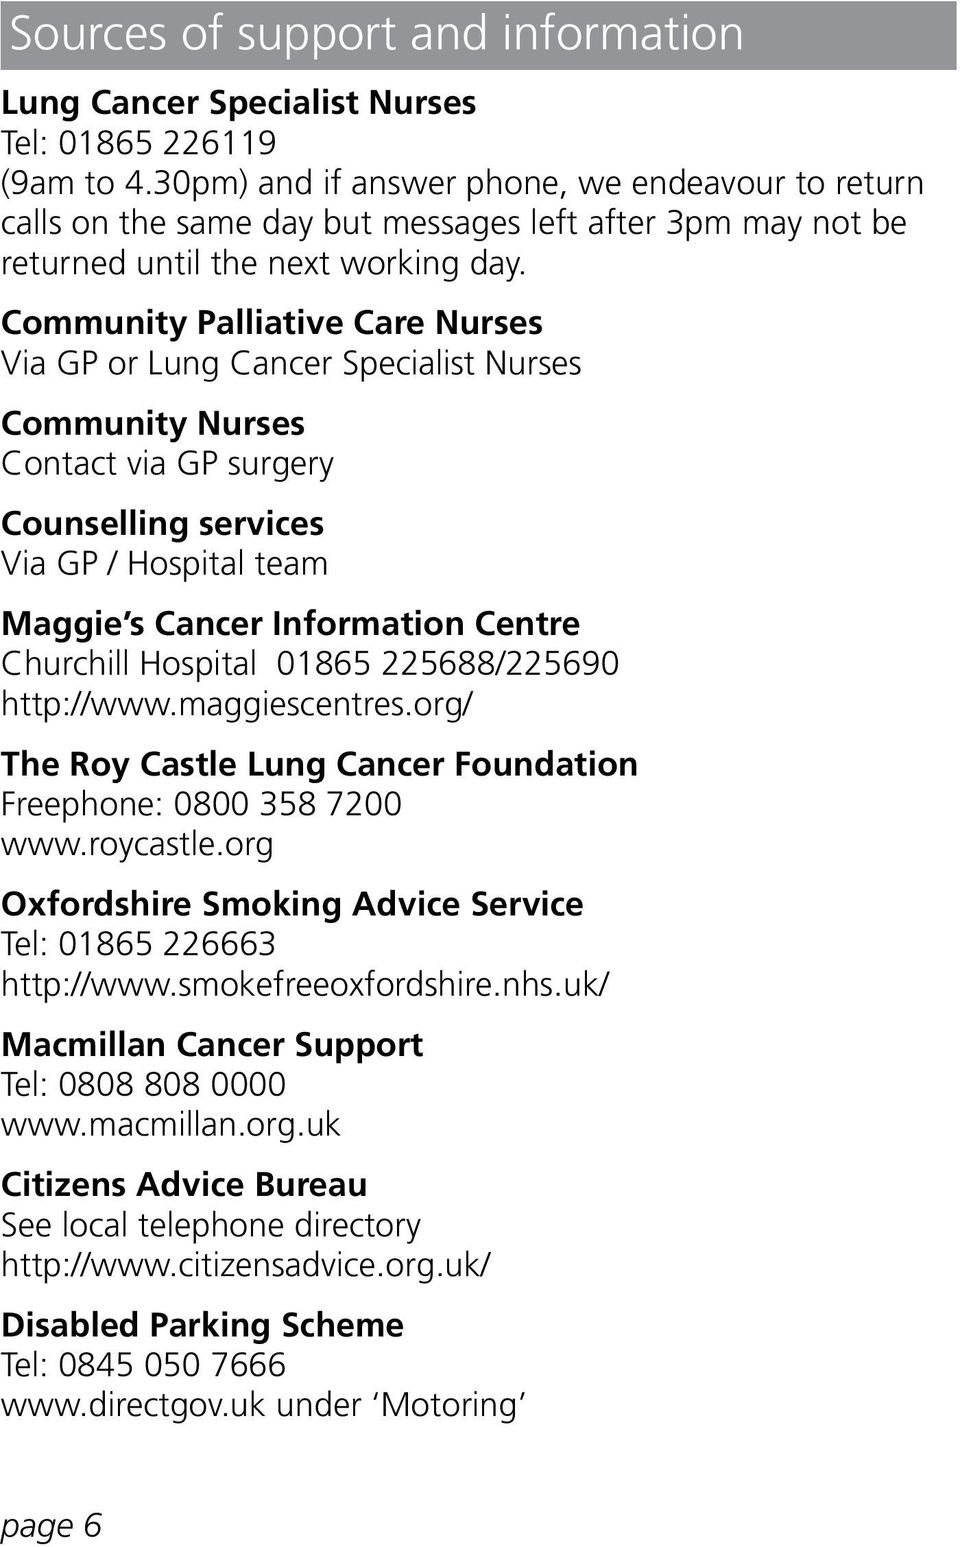 Community Palliative Care Nurses Via GP or Lung Cancer Specialist Nurses Community Nurses Contact via GP surgery Counselling services Via GP / Hospital team Maggie s Cancer Information Centre